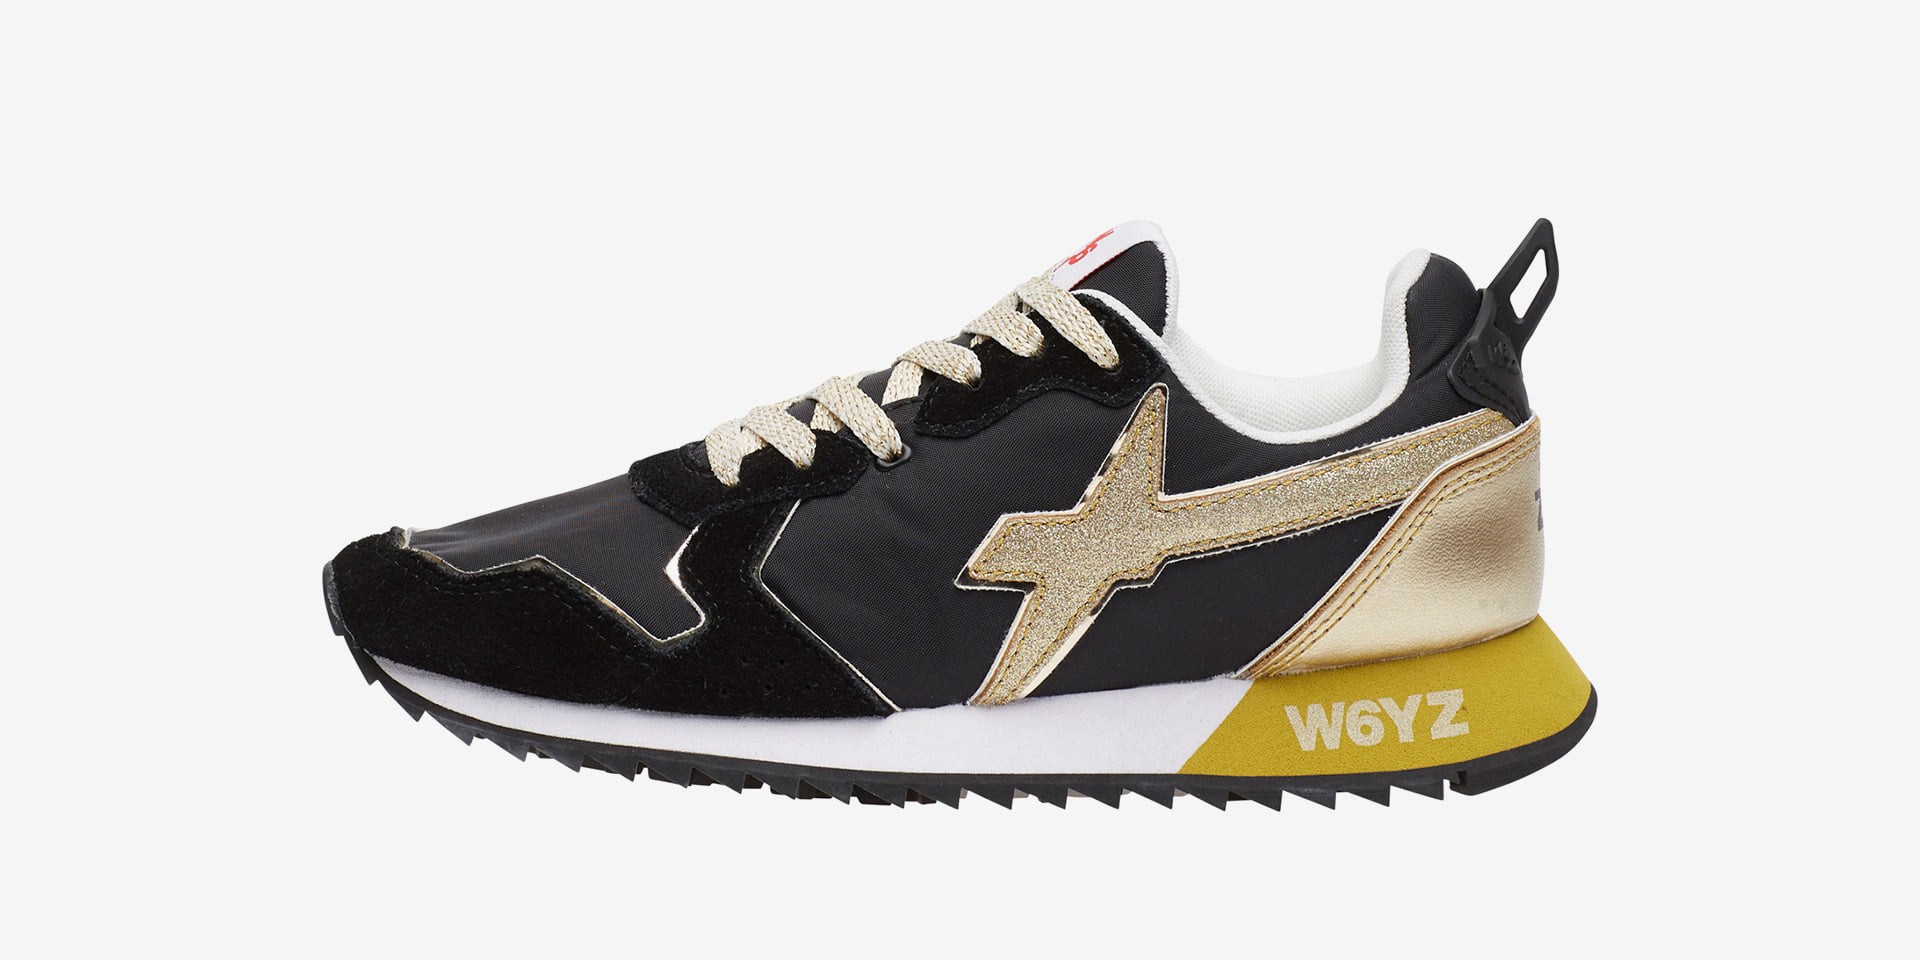 JET-W. - Technical fabric and suede sneakers - Black/Platinum